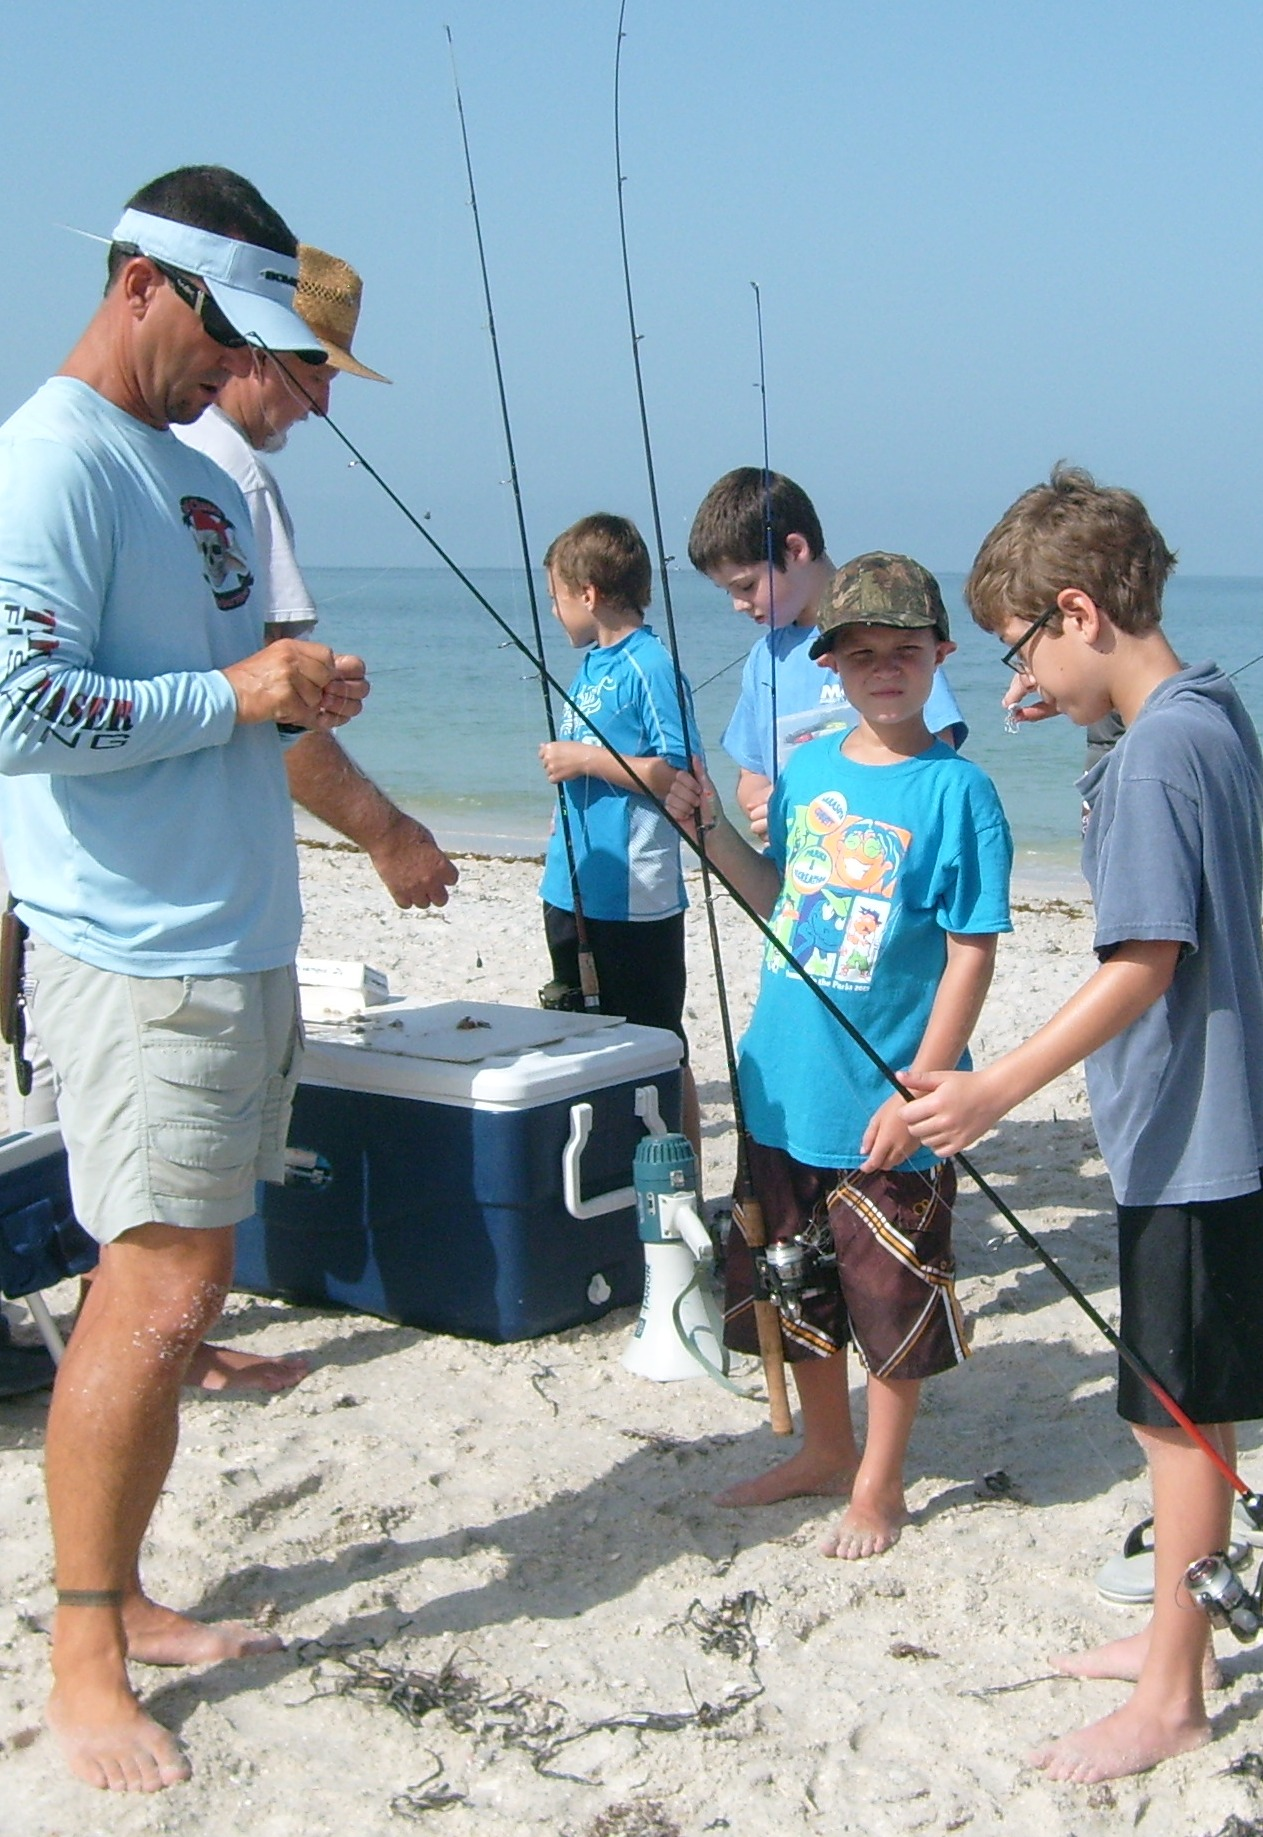 Nokomis beach 901 casey key rd casey key contact person for Fishing summer camp